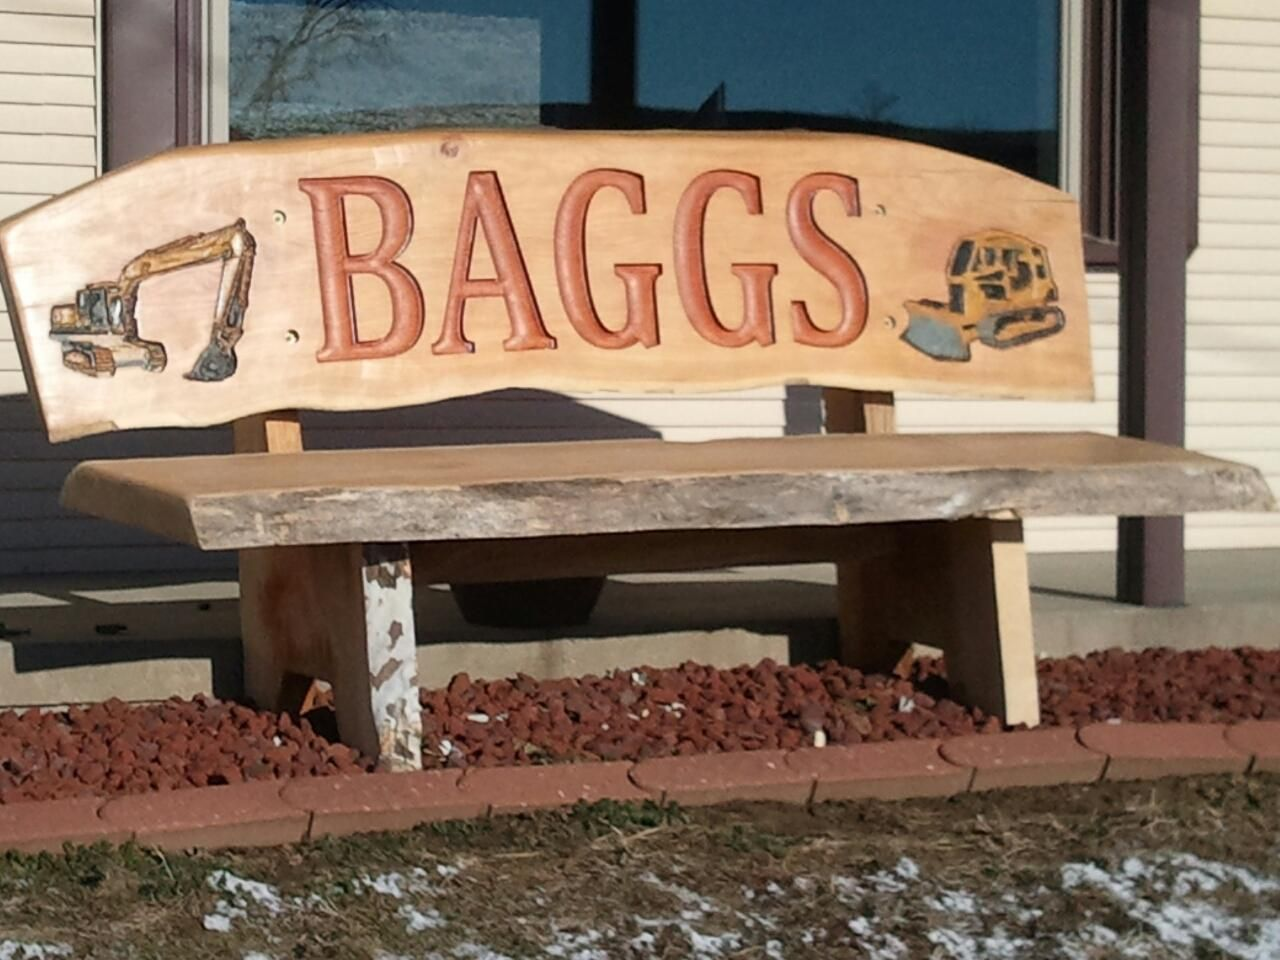 Create A Custom One Off Bench By Adding A Family Name Or Design With Images Design